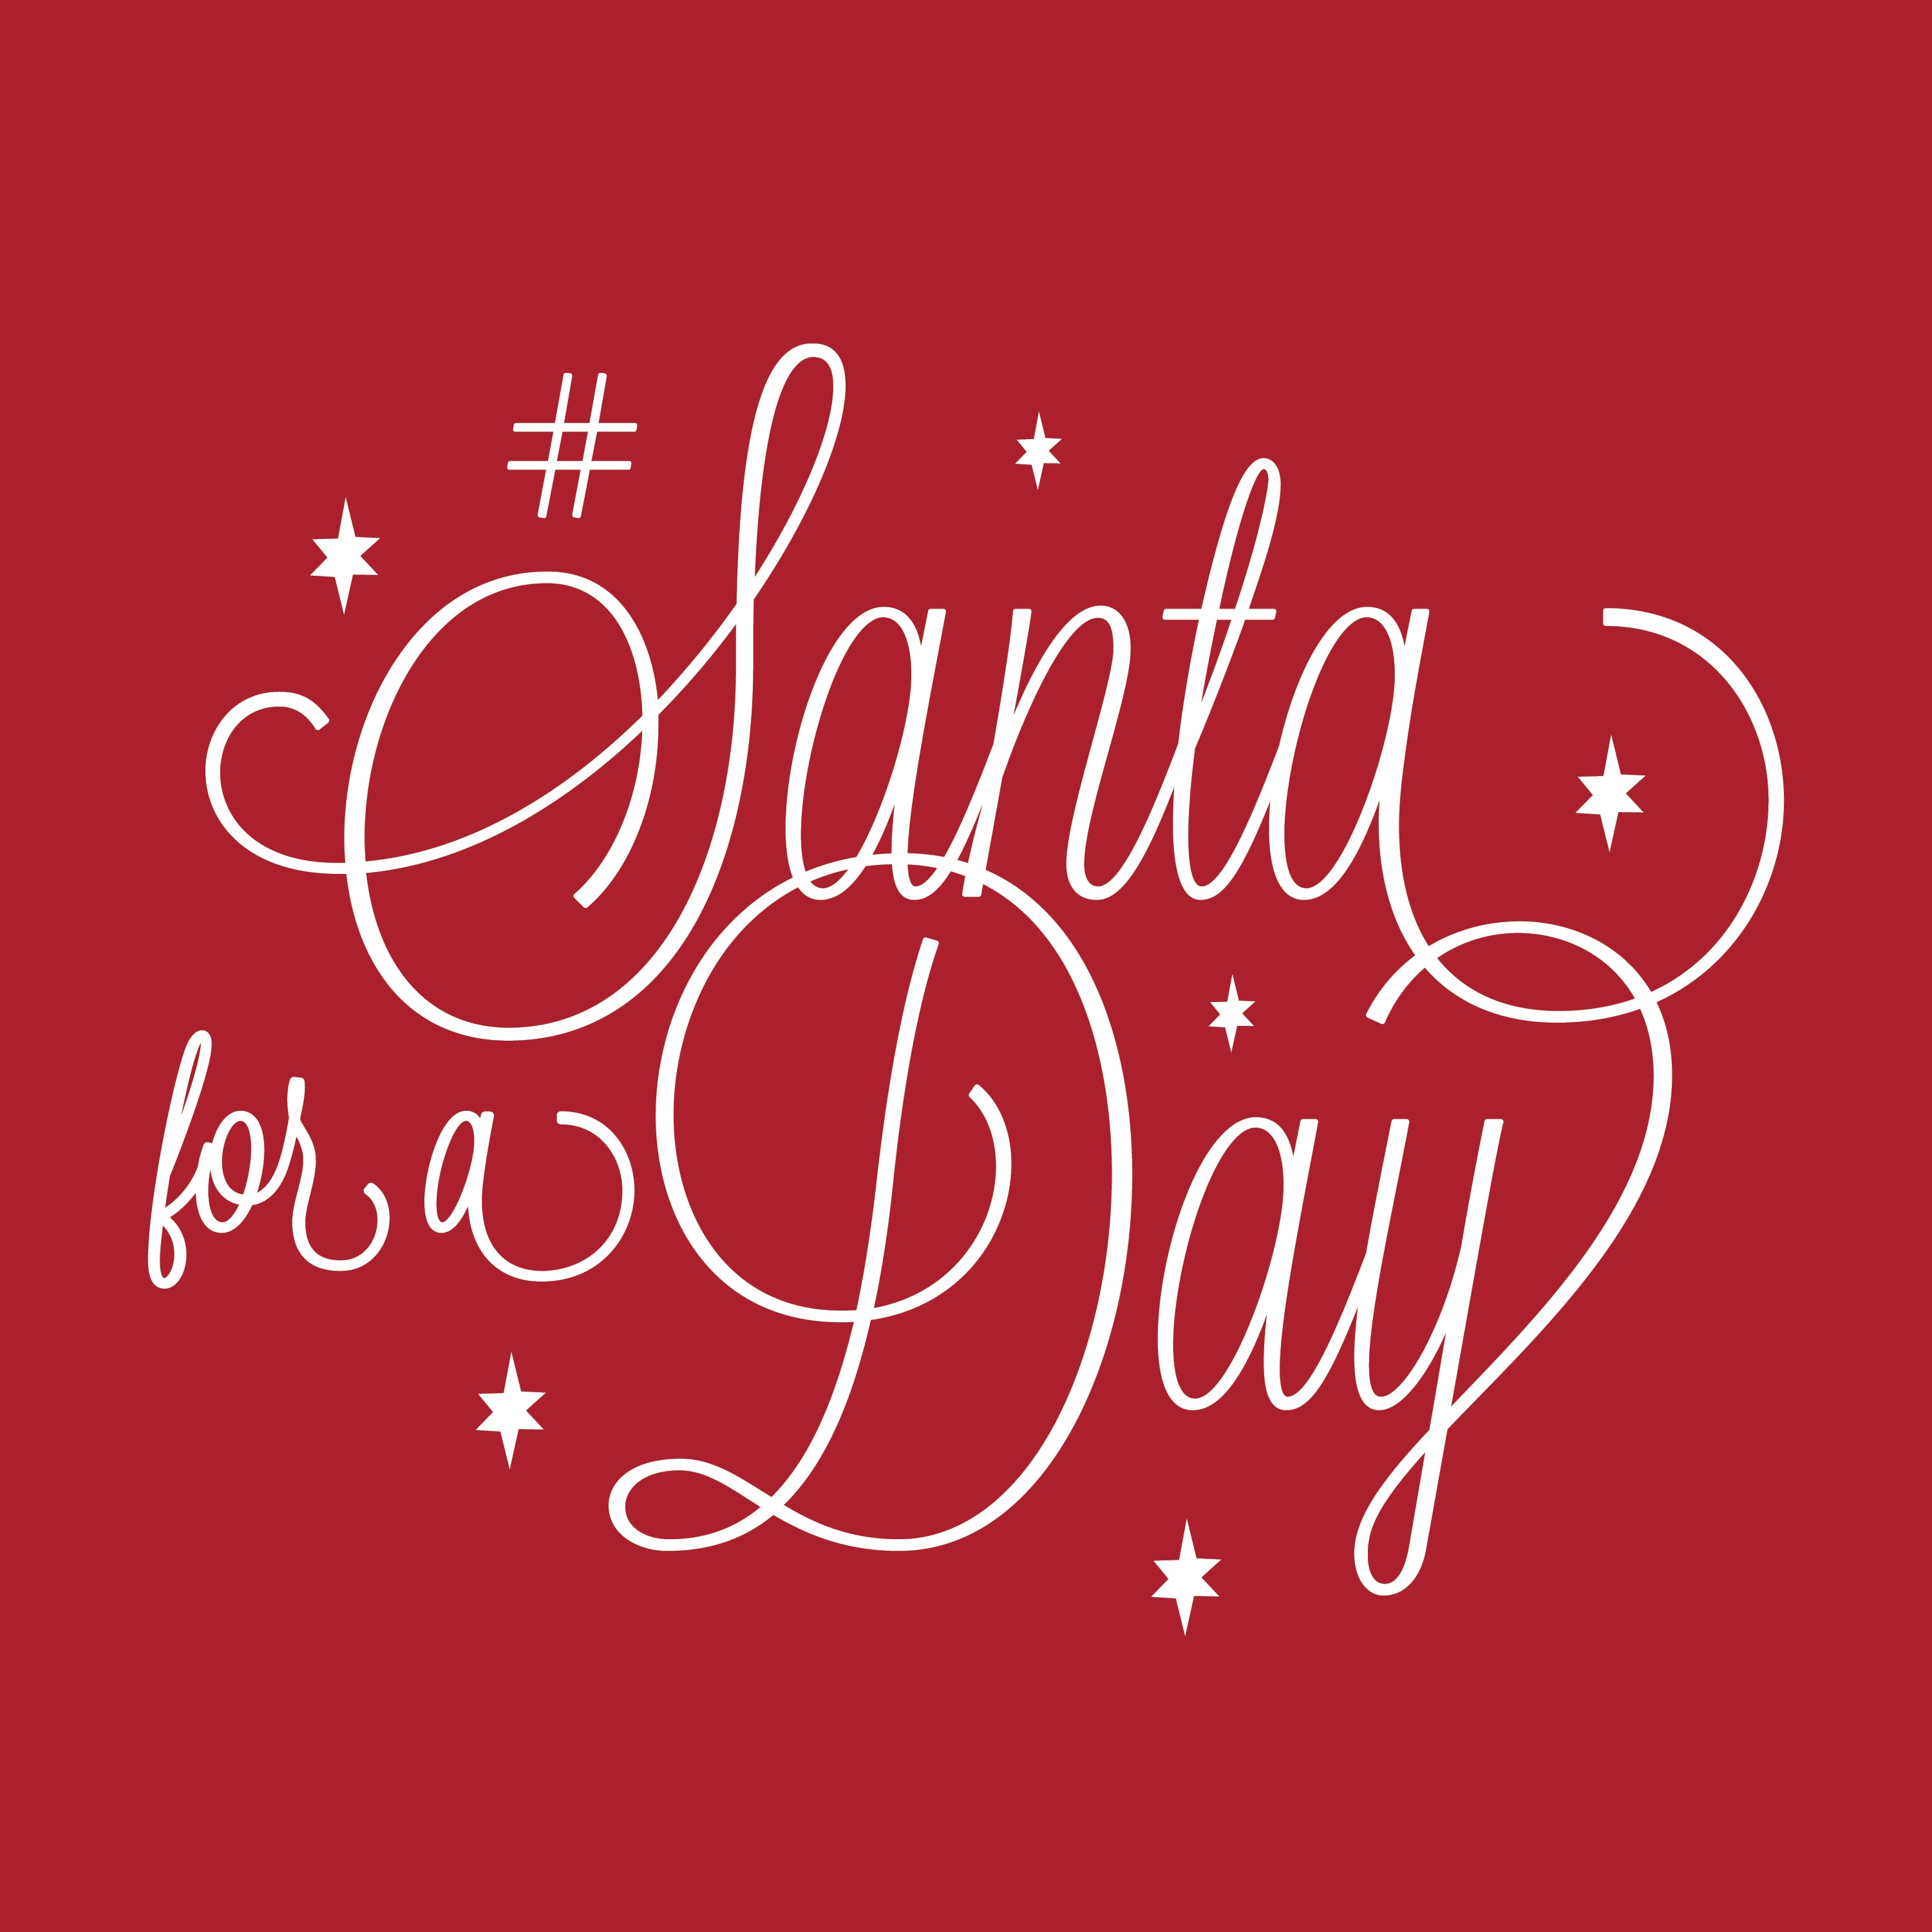 #SantaForADay Lands' End gift card giveaways